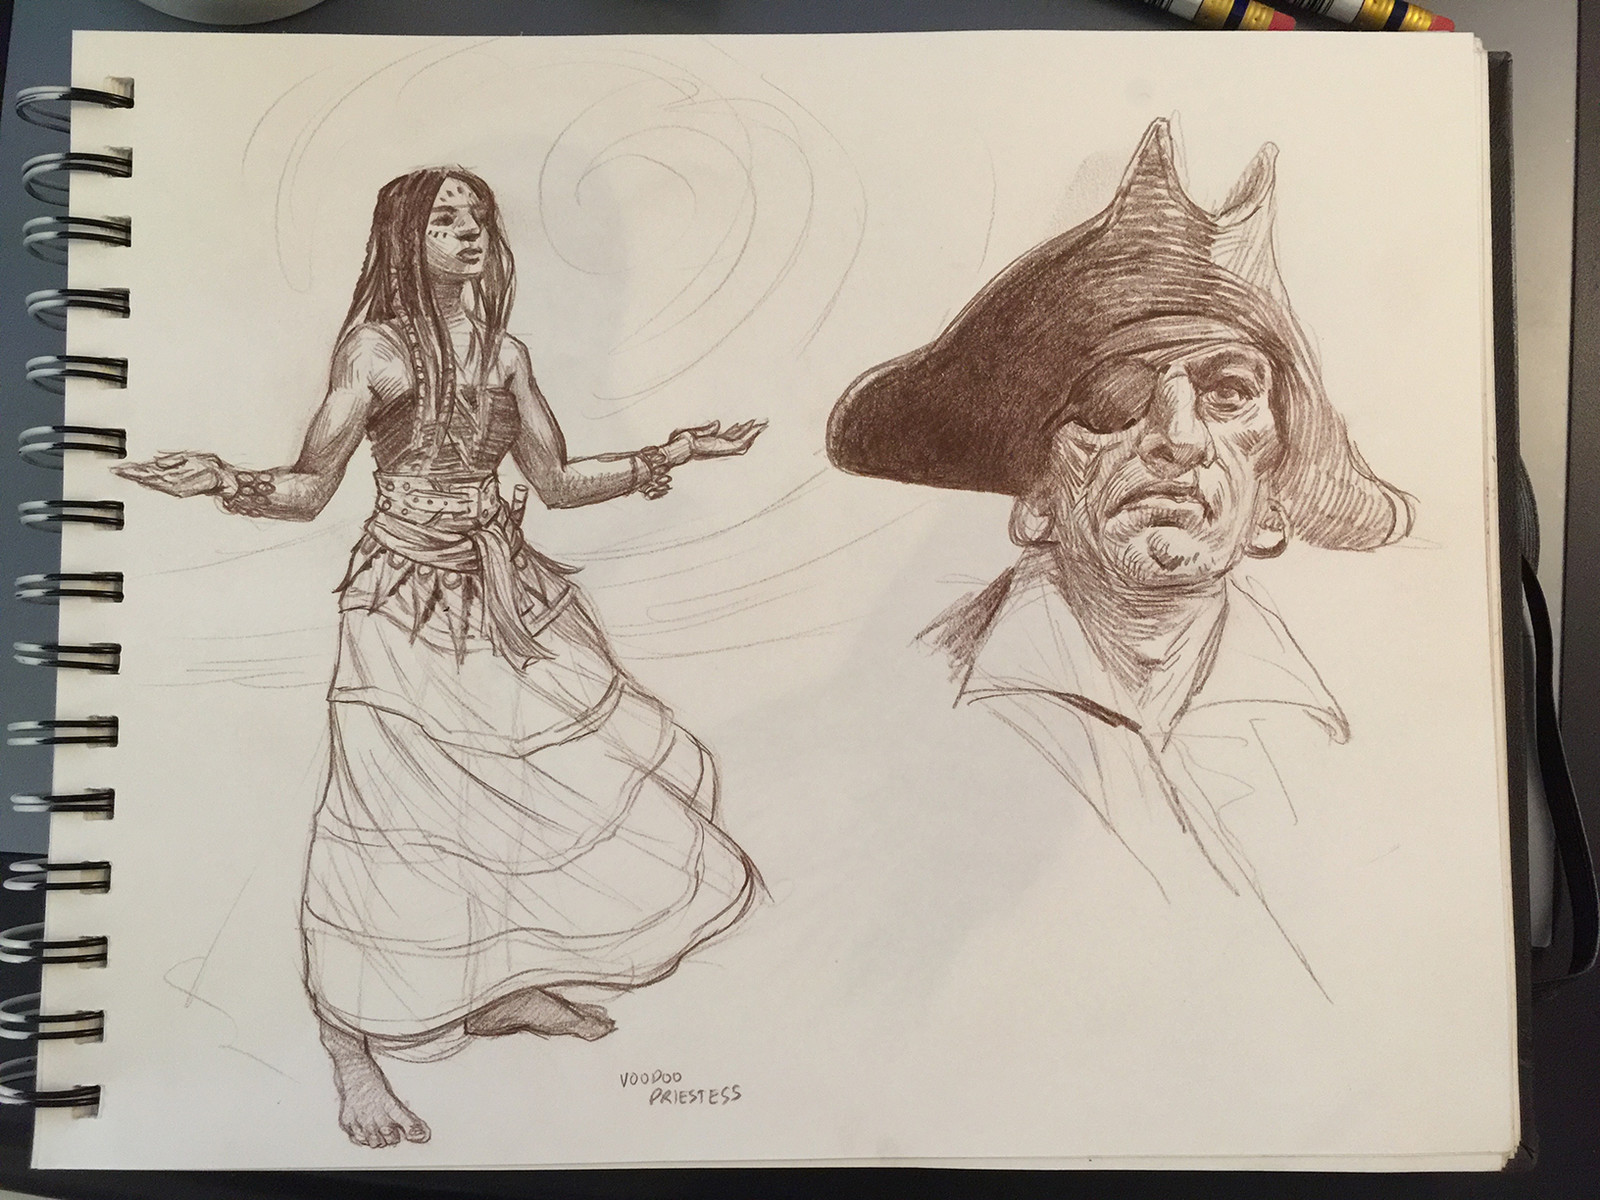 Voodoo Priestess and a Pirate.